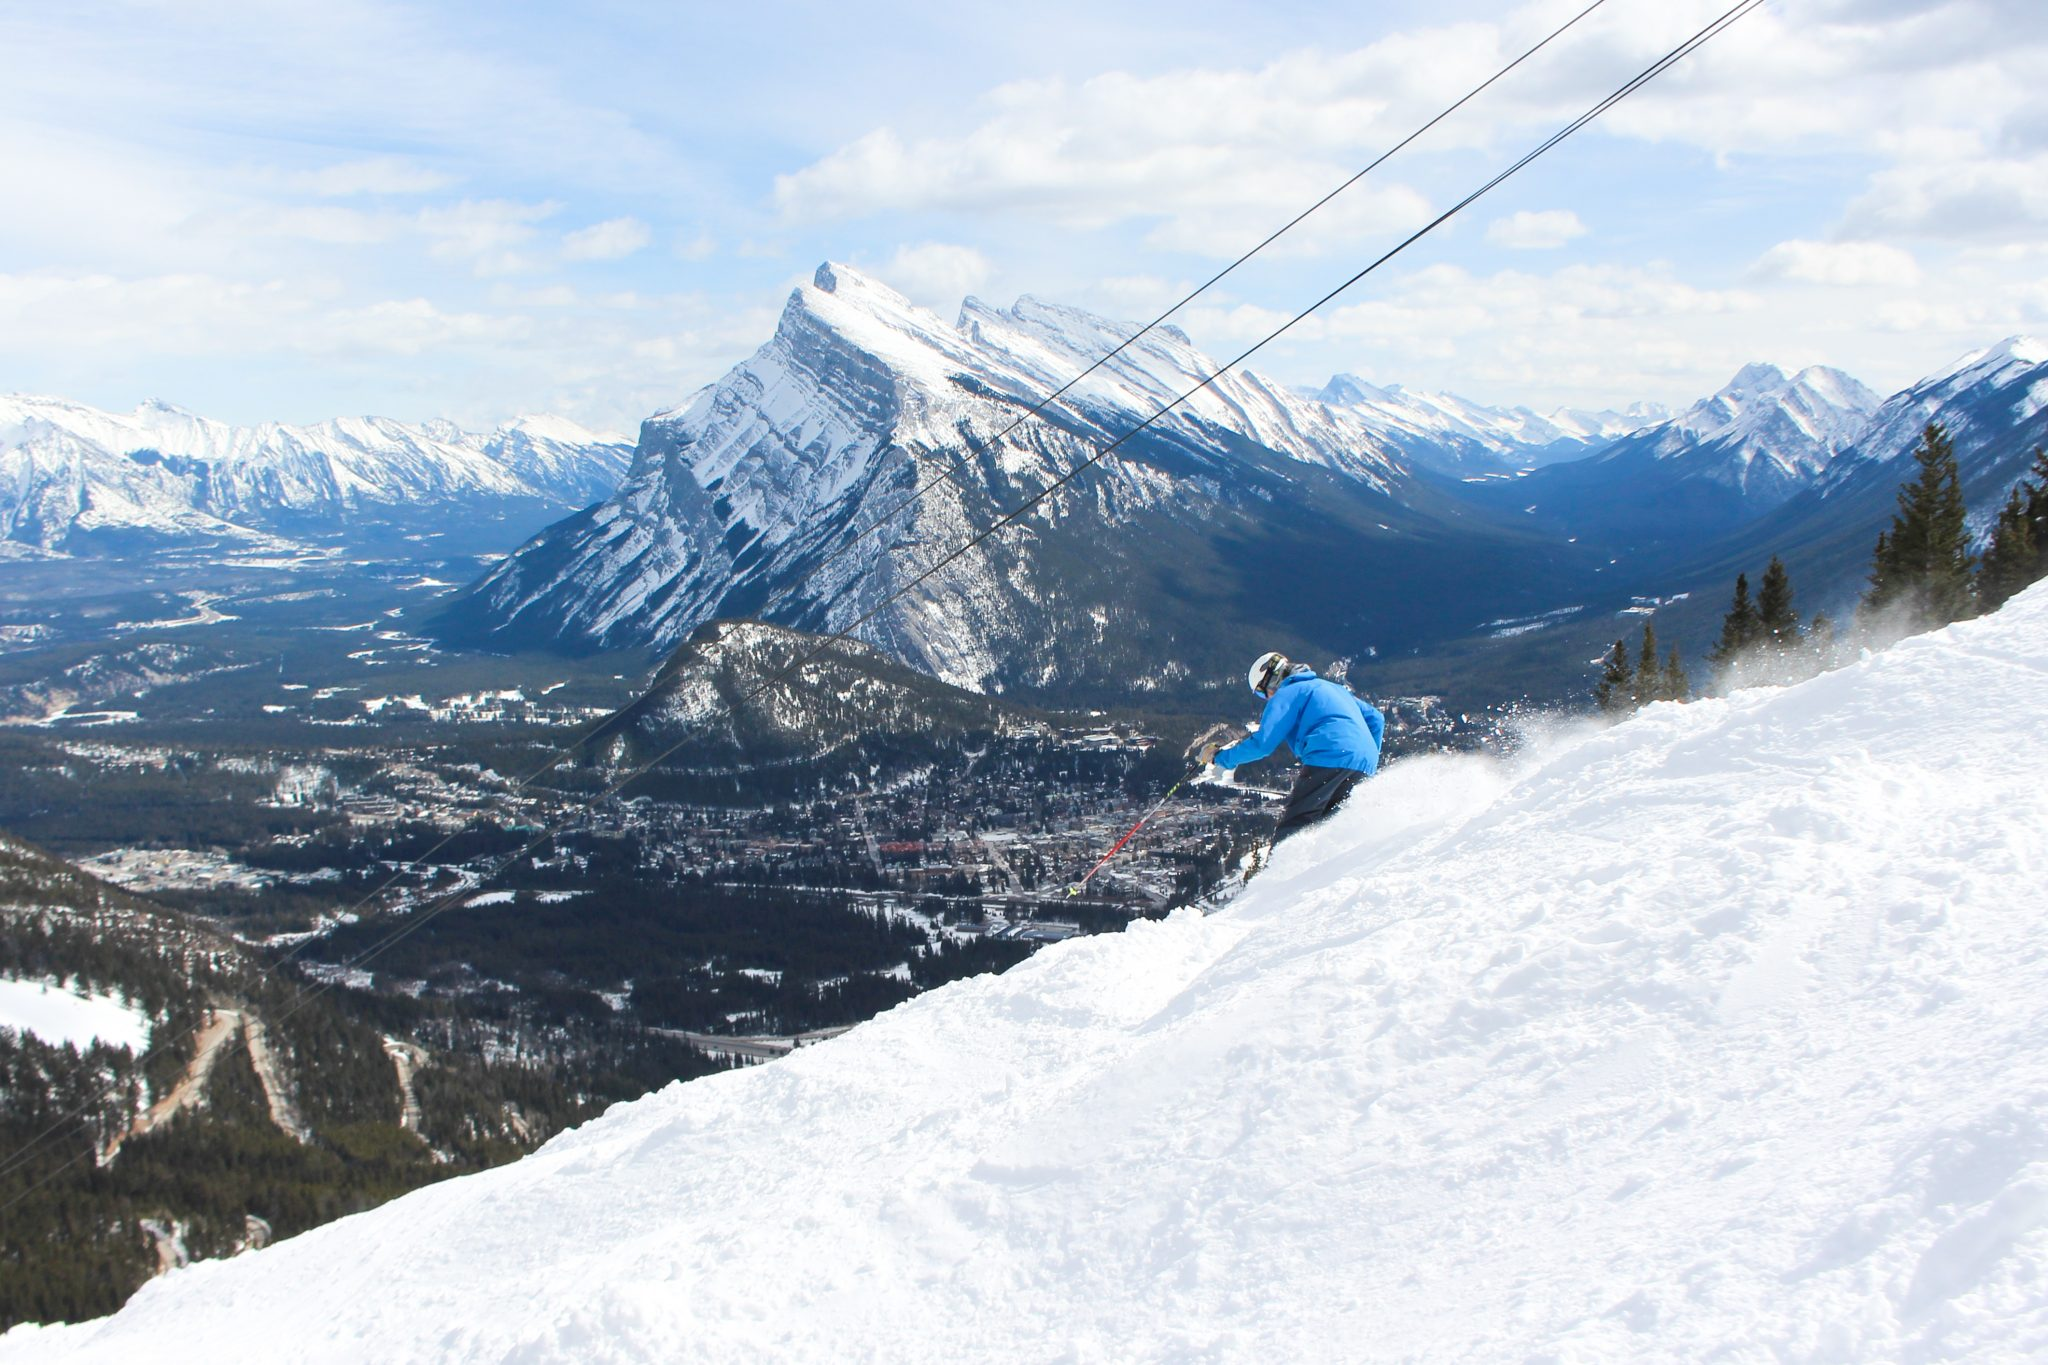 image-5-this-season_s-conditions-were-among-the-best-in-norquay_s-92-year-history.-photo_-march-28-2018